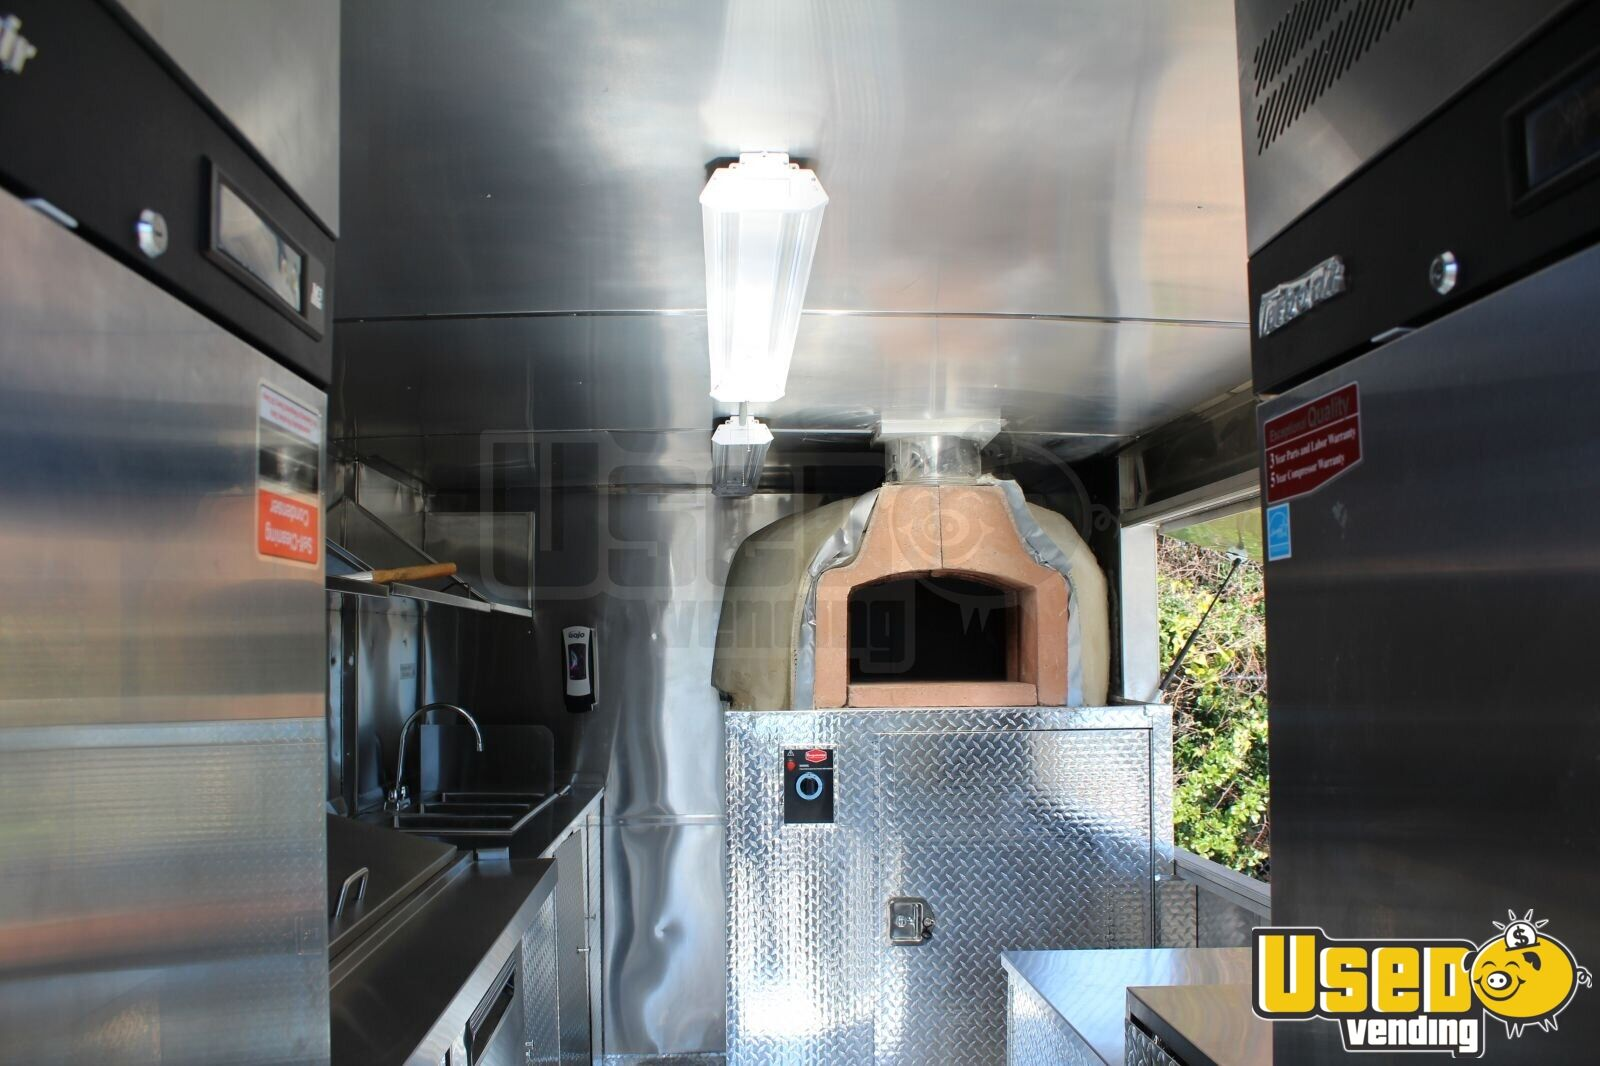 1996 Gmc Pizza Food Truck Insulated Walls South Carolina Diesel Engine for Sale - 5